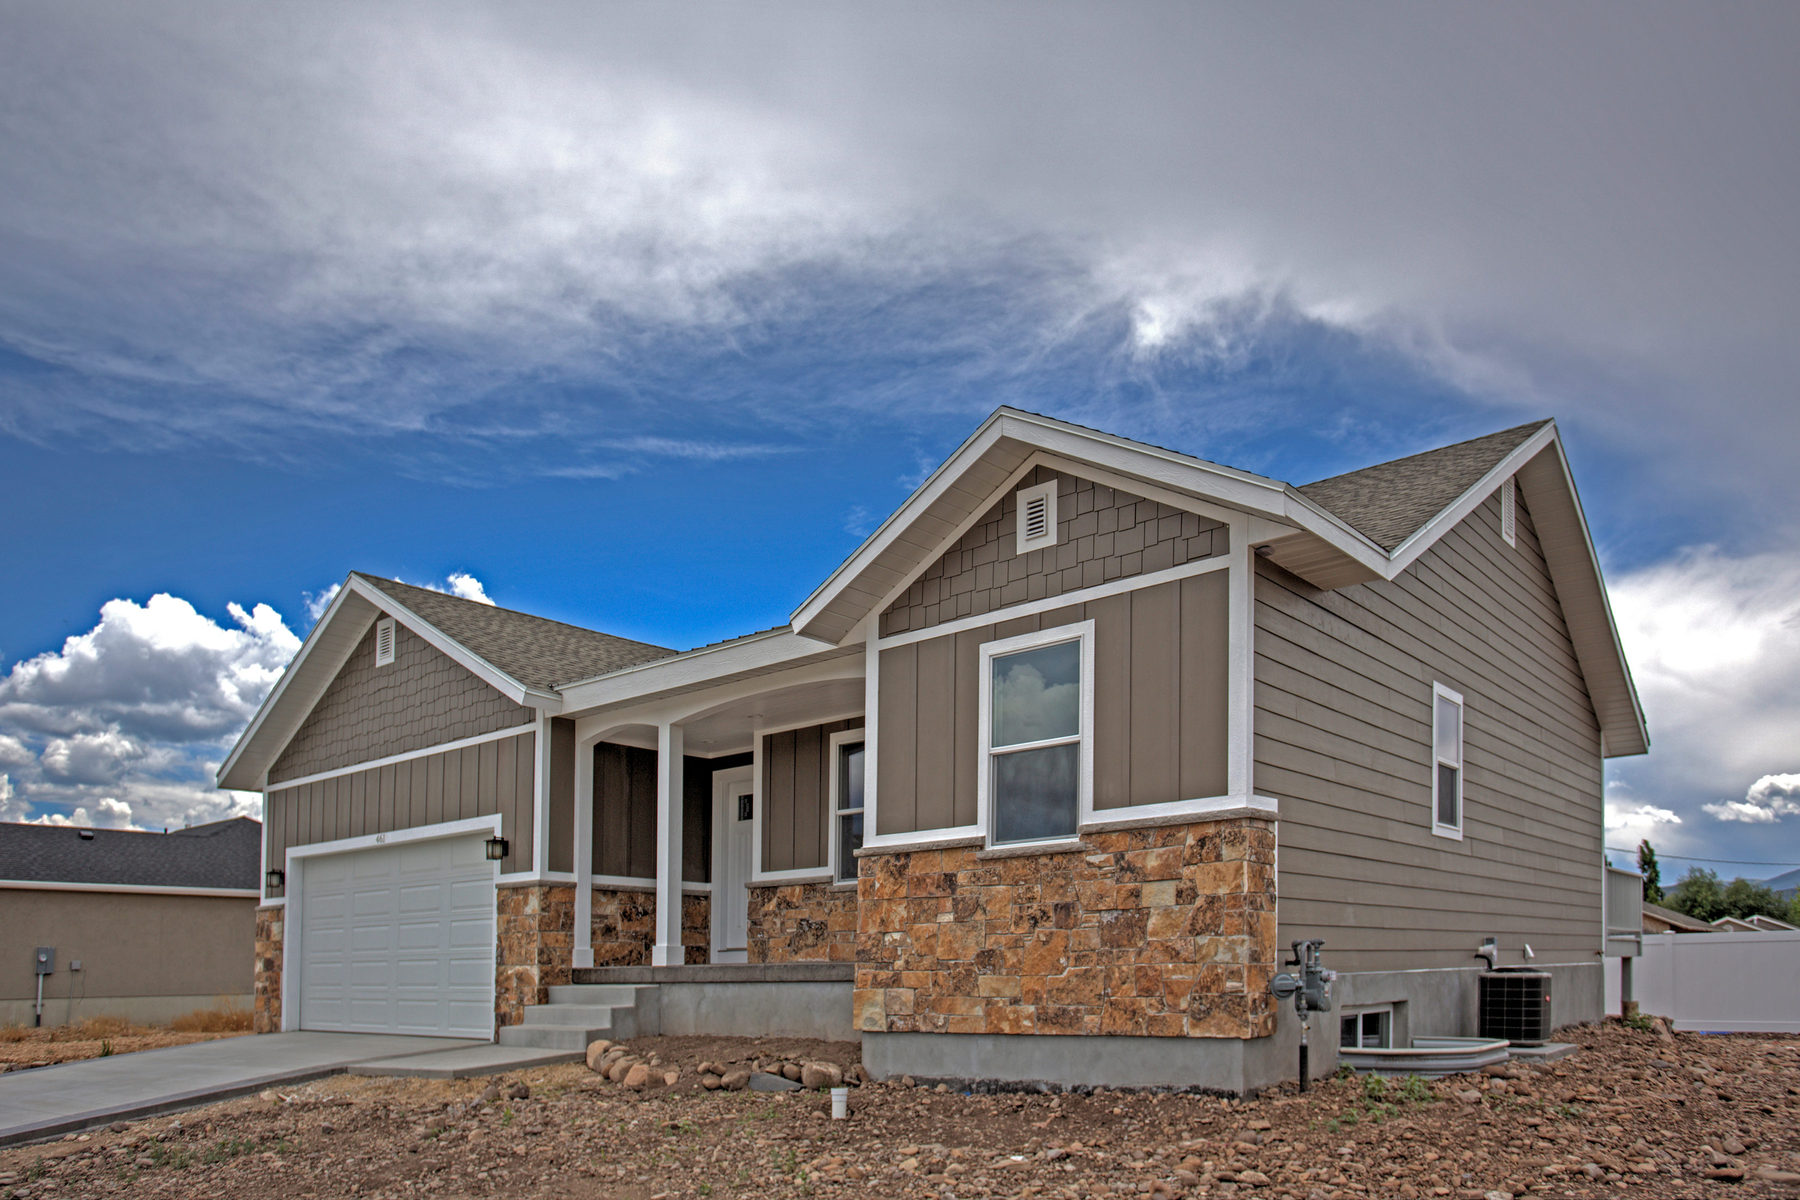 Property For Sale at Newly constructed in Midway with Views of Timpanogos